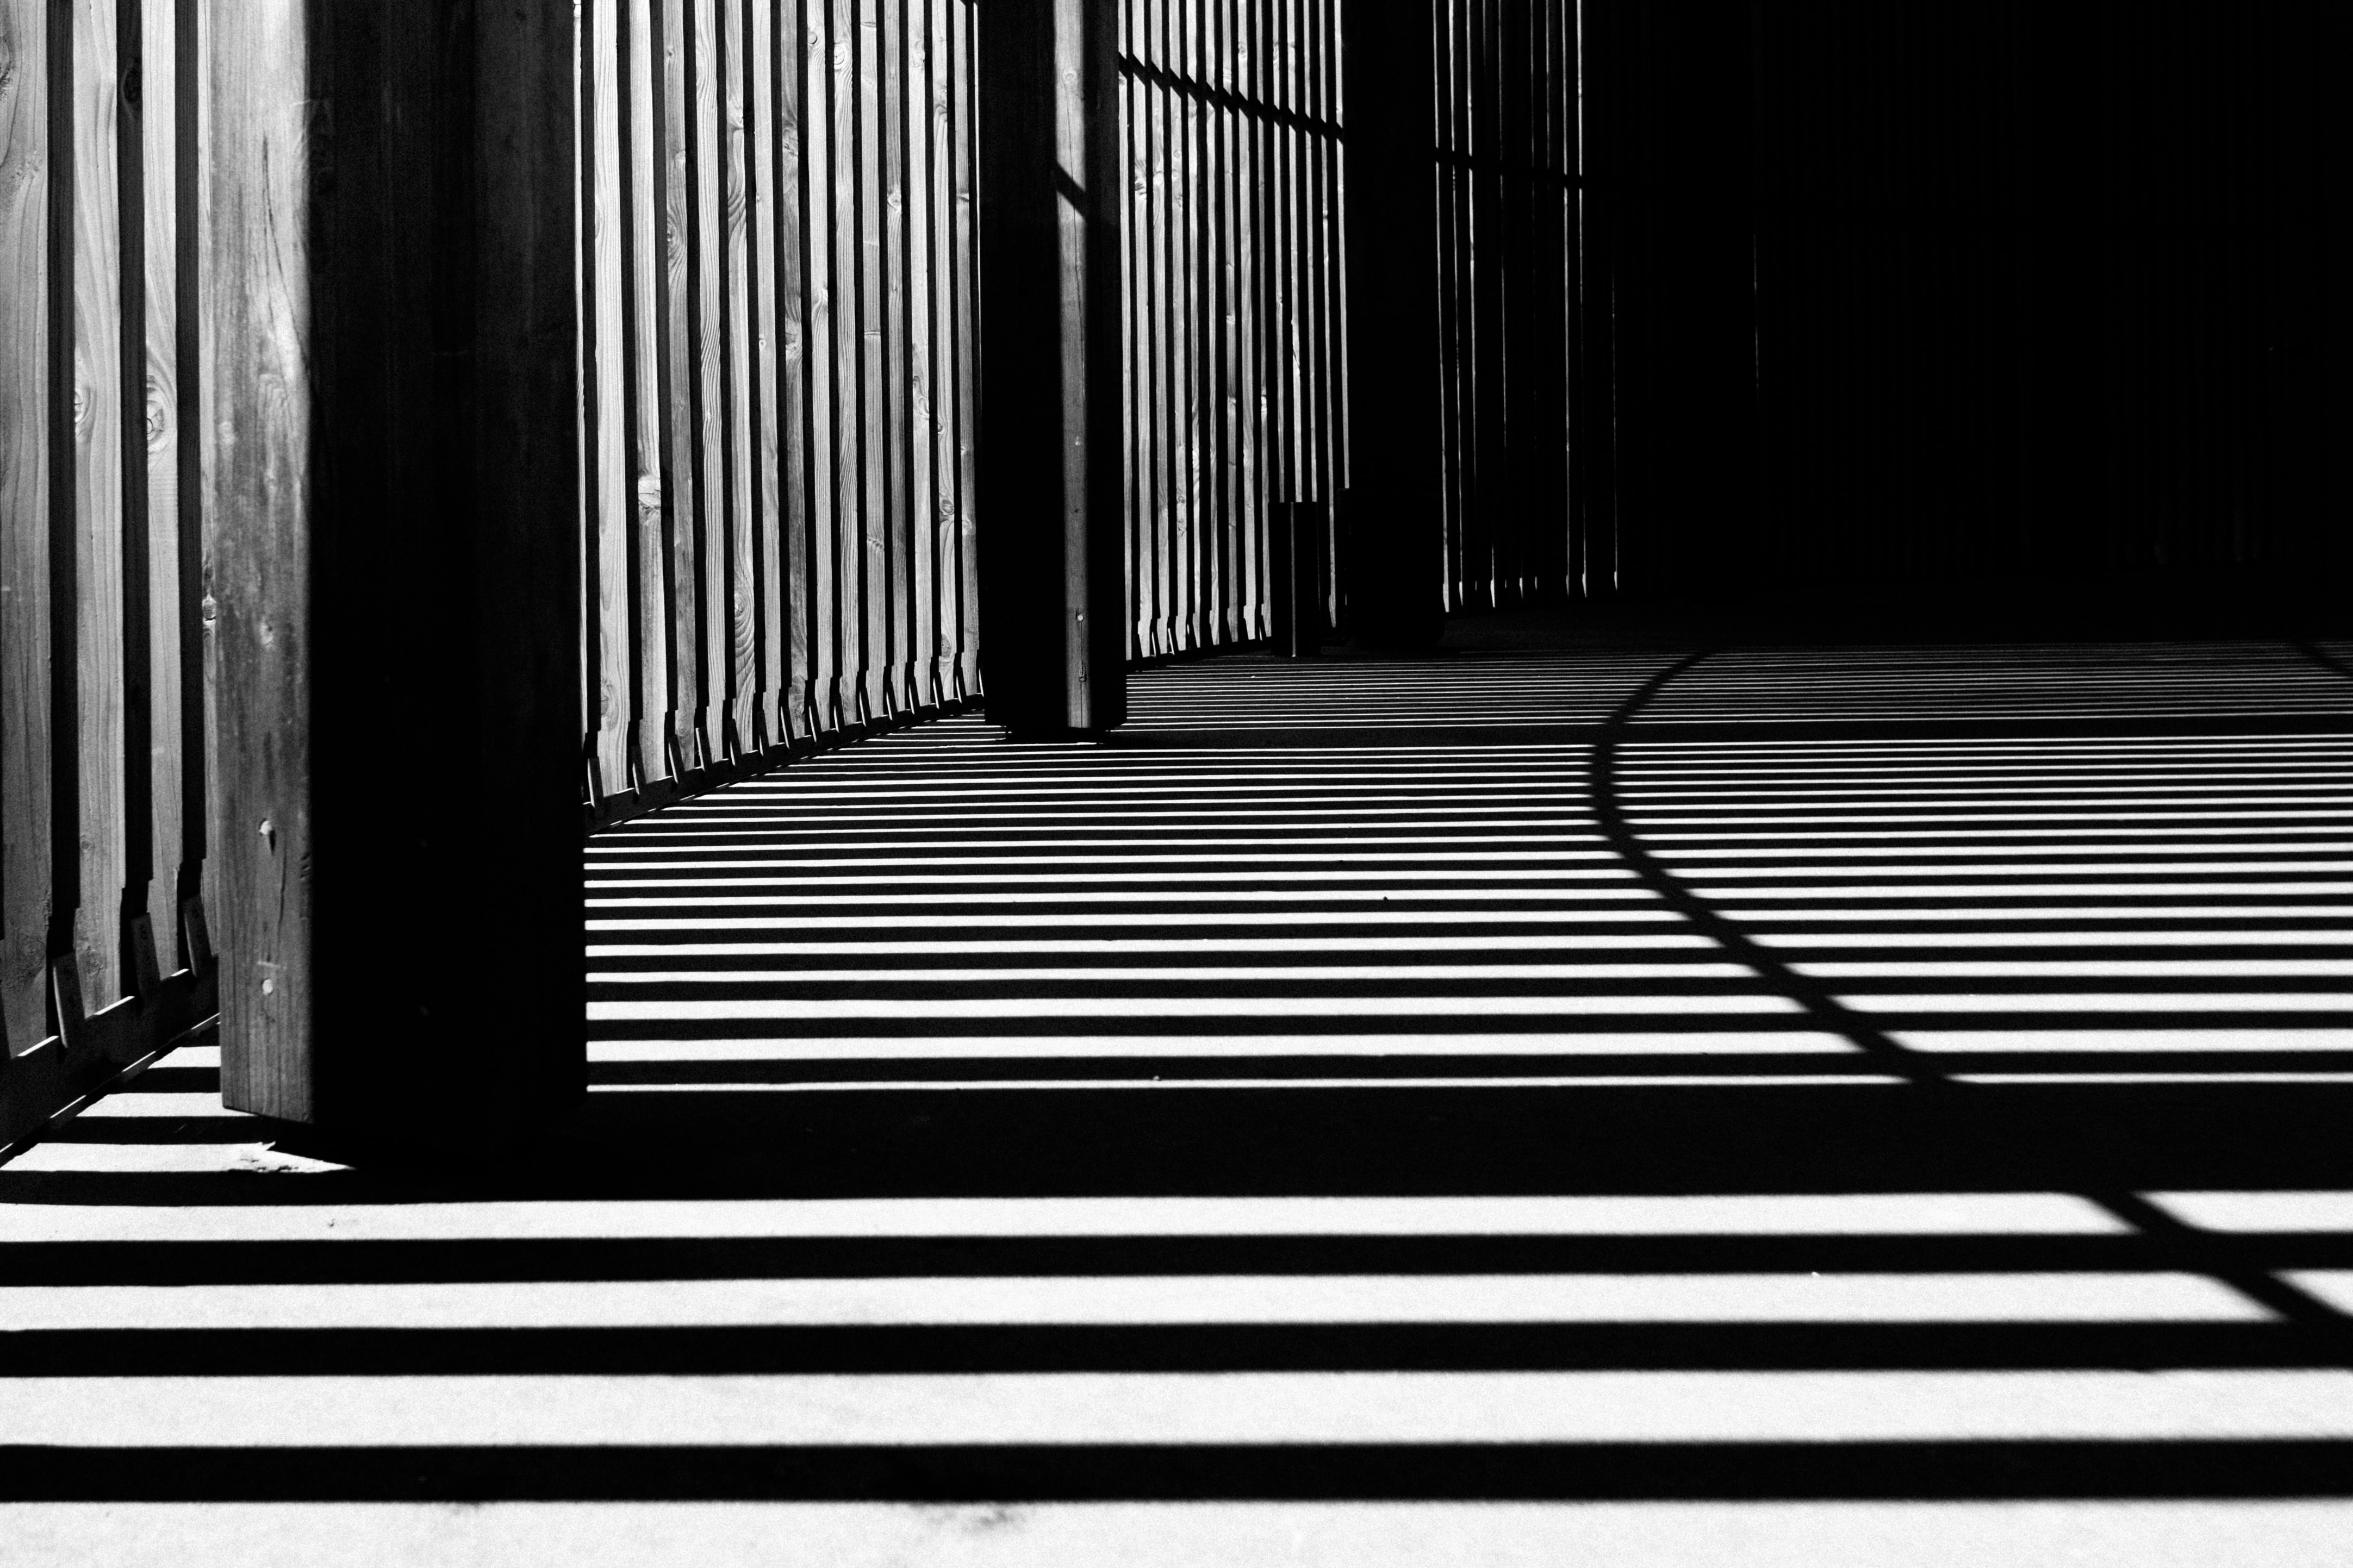 The shadows from a building structure creating lines across the floor